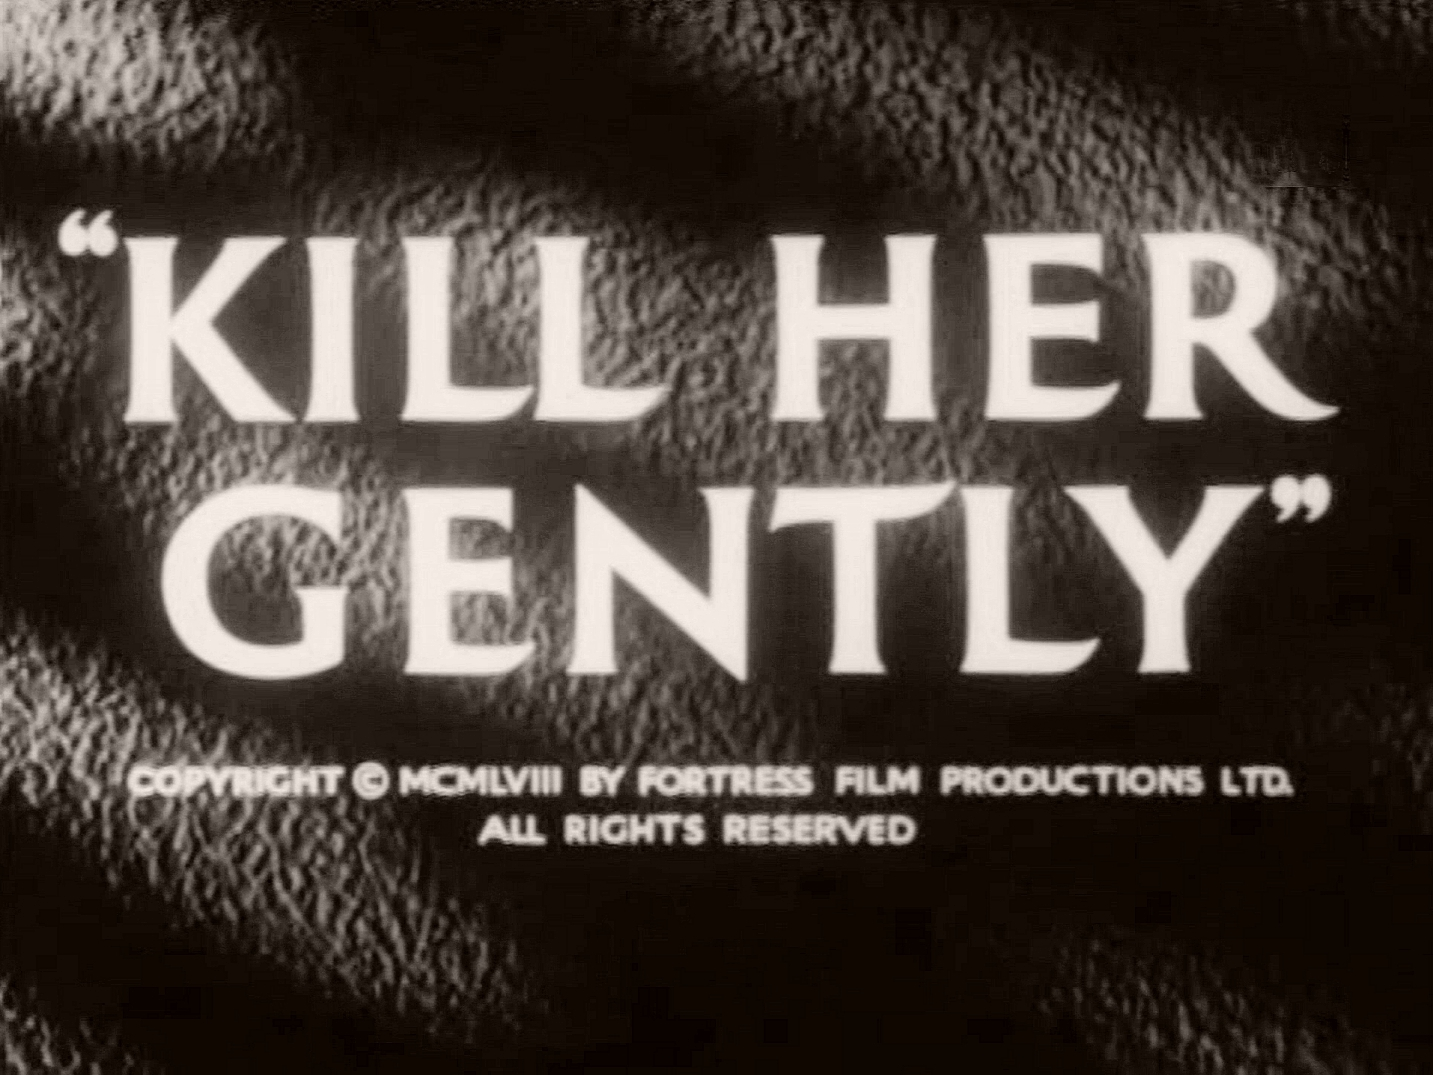 Main title from Kill Her Gently (1957) (6).  Copyright 1958 by Fortress Film Productions Ltd.  All rights reserved